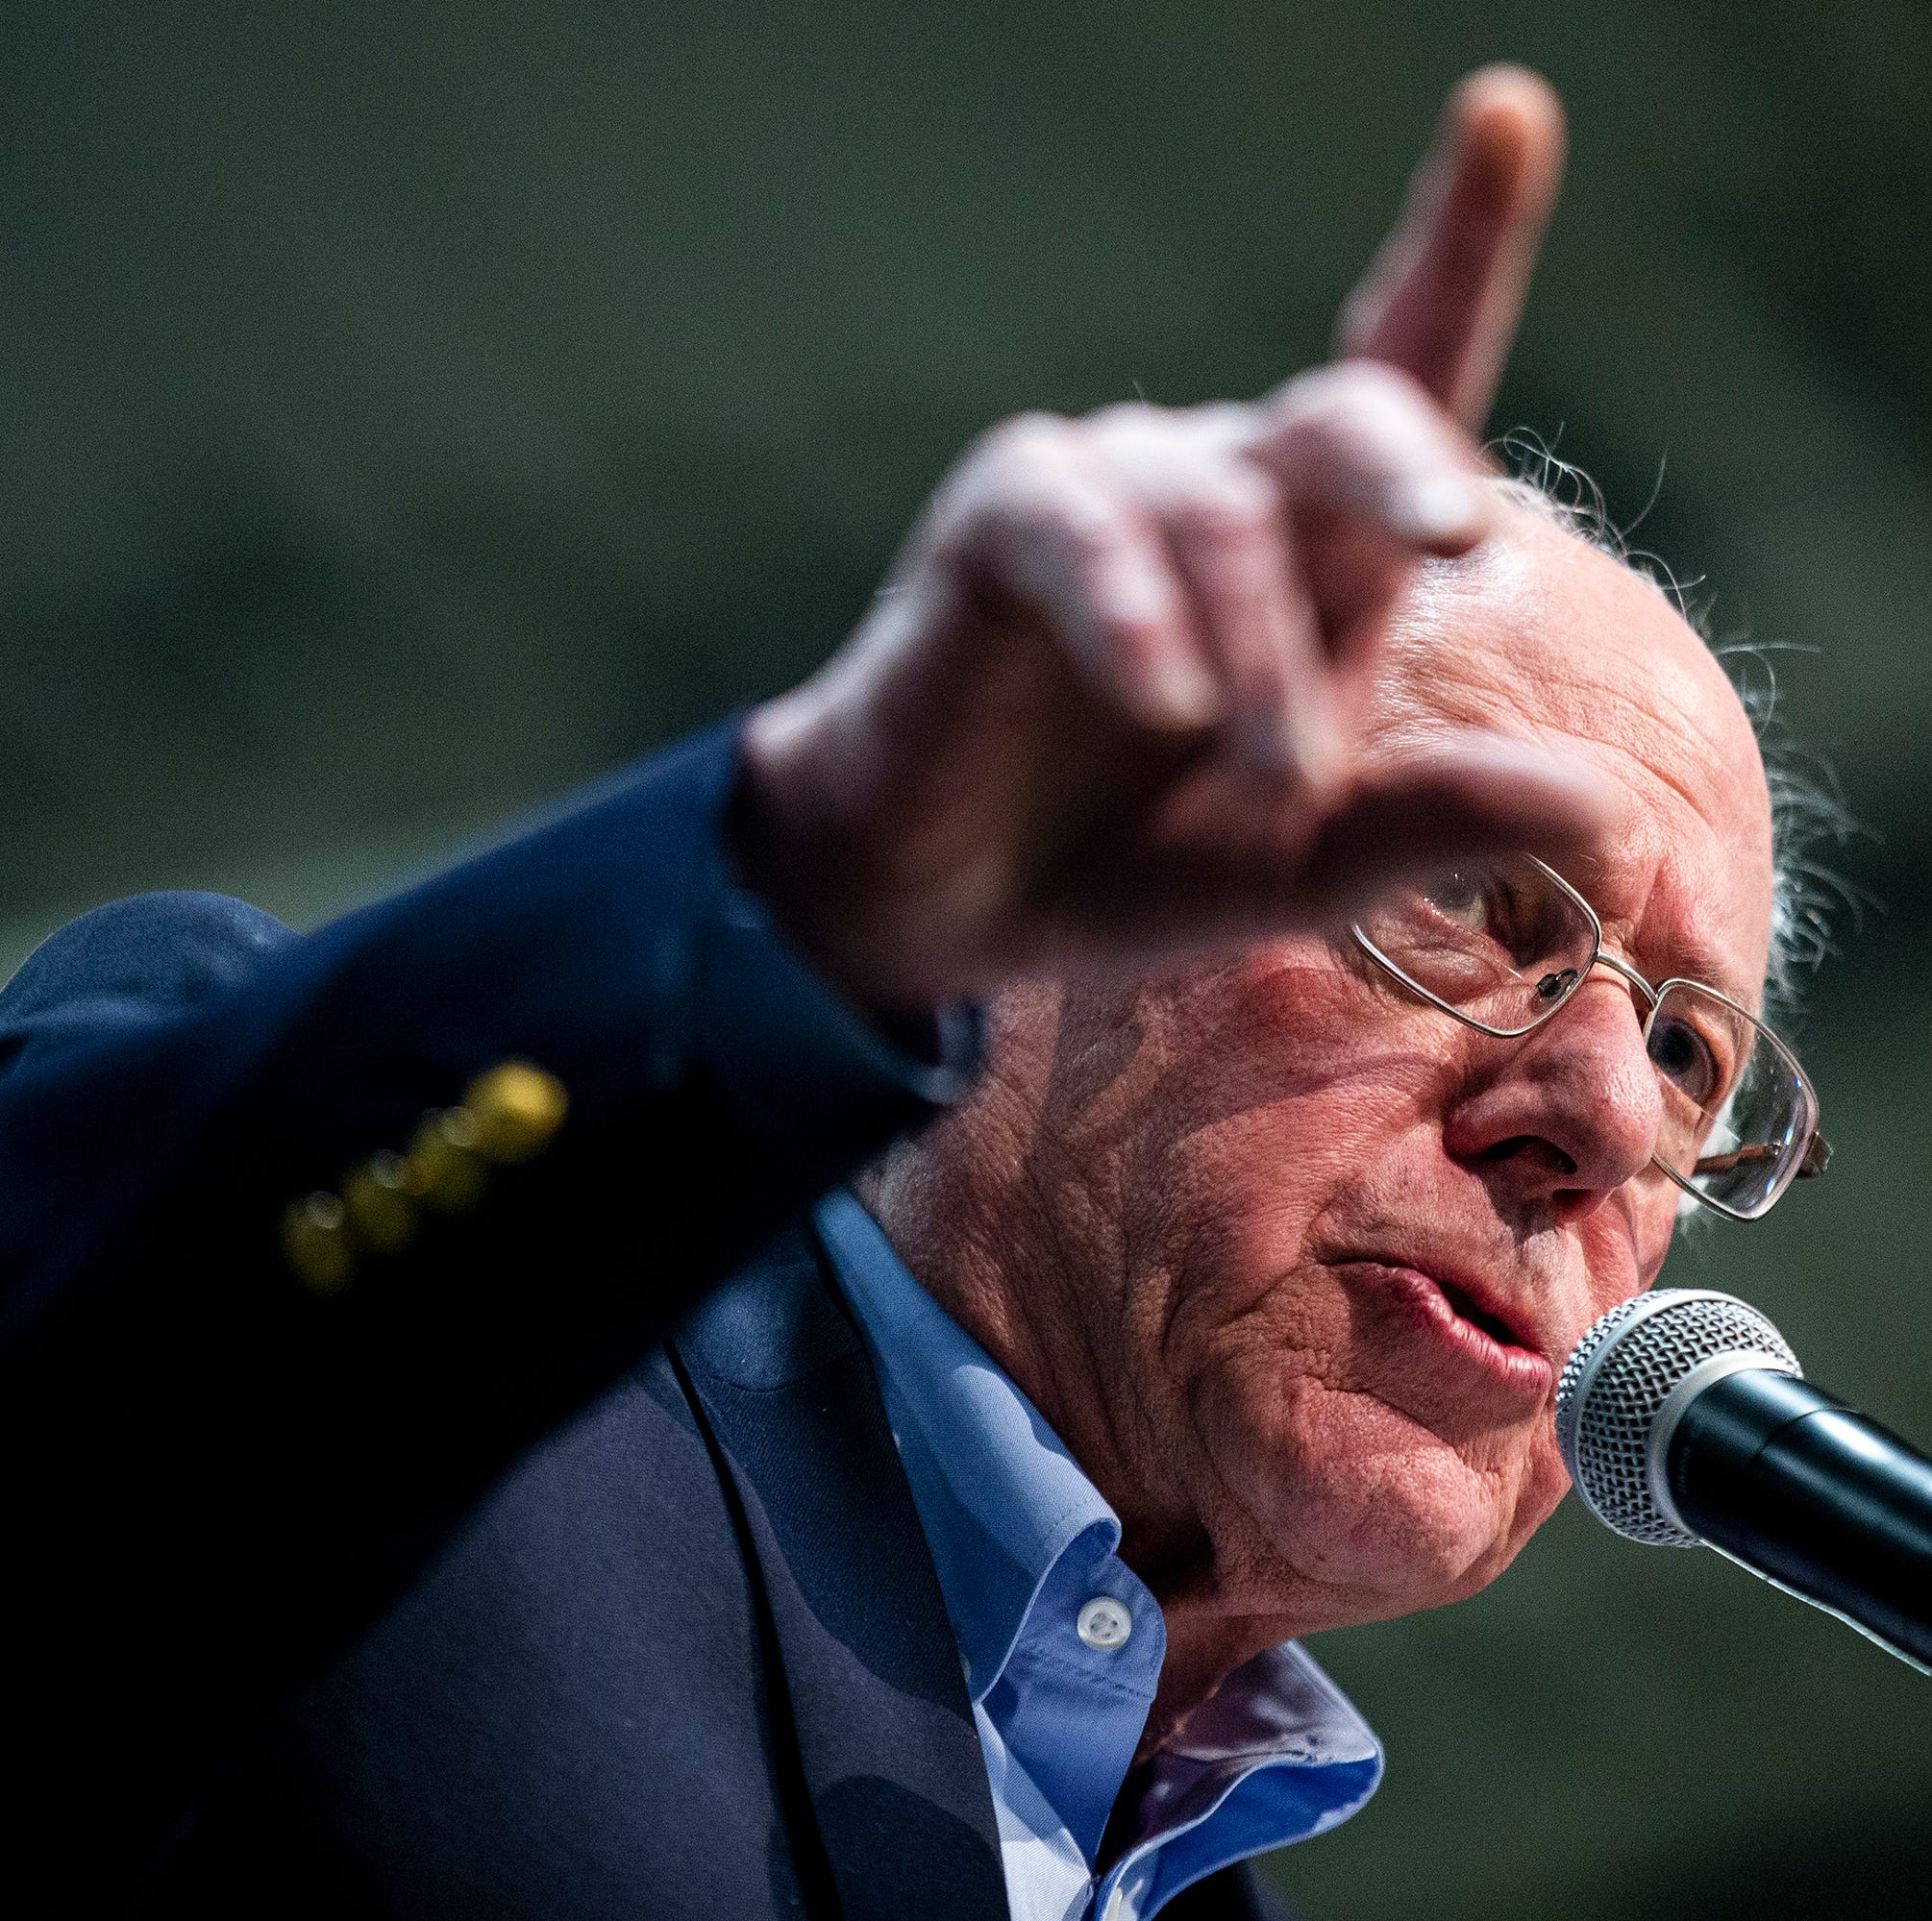 In ag policy speech, Bernie Sanders calls for 'radical' changes to farming, subsidies and commodity price controls